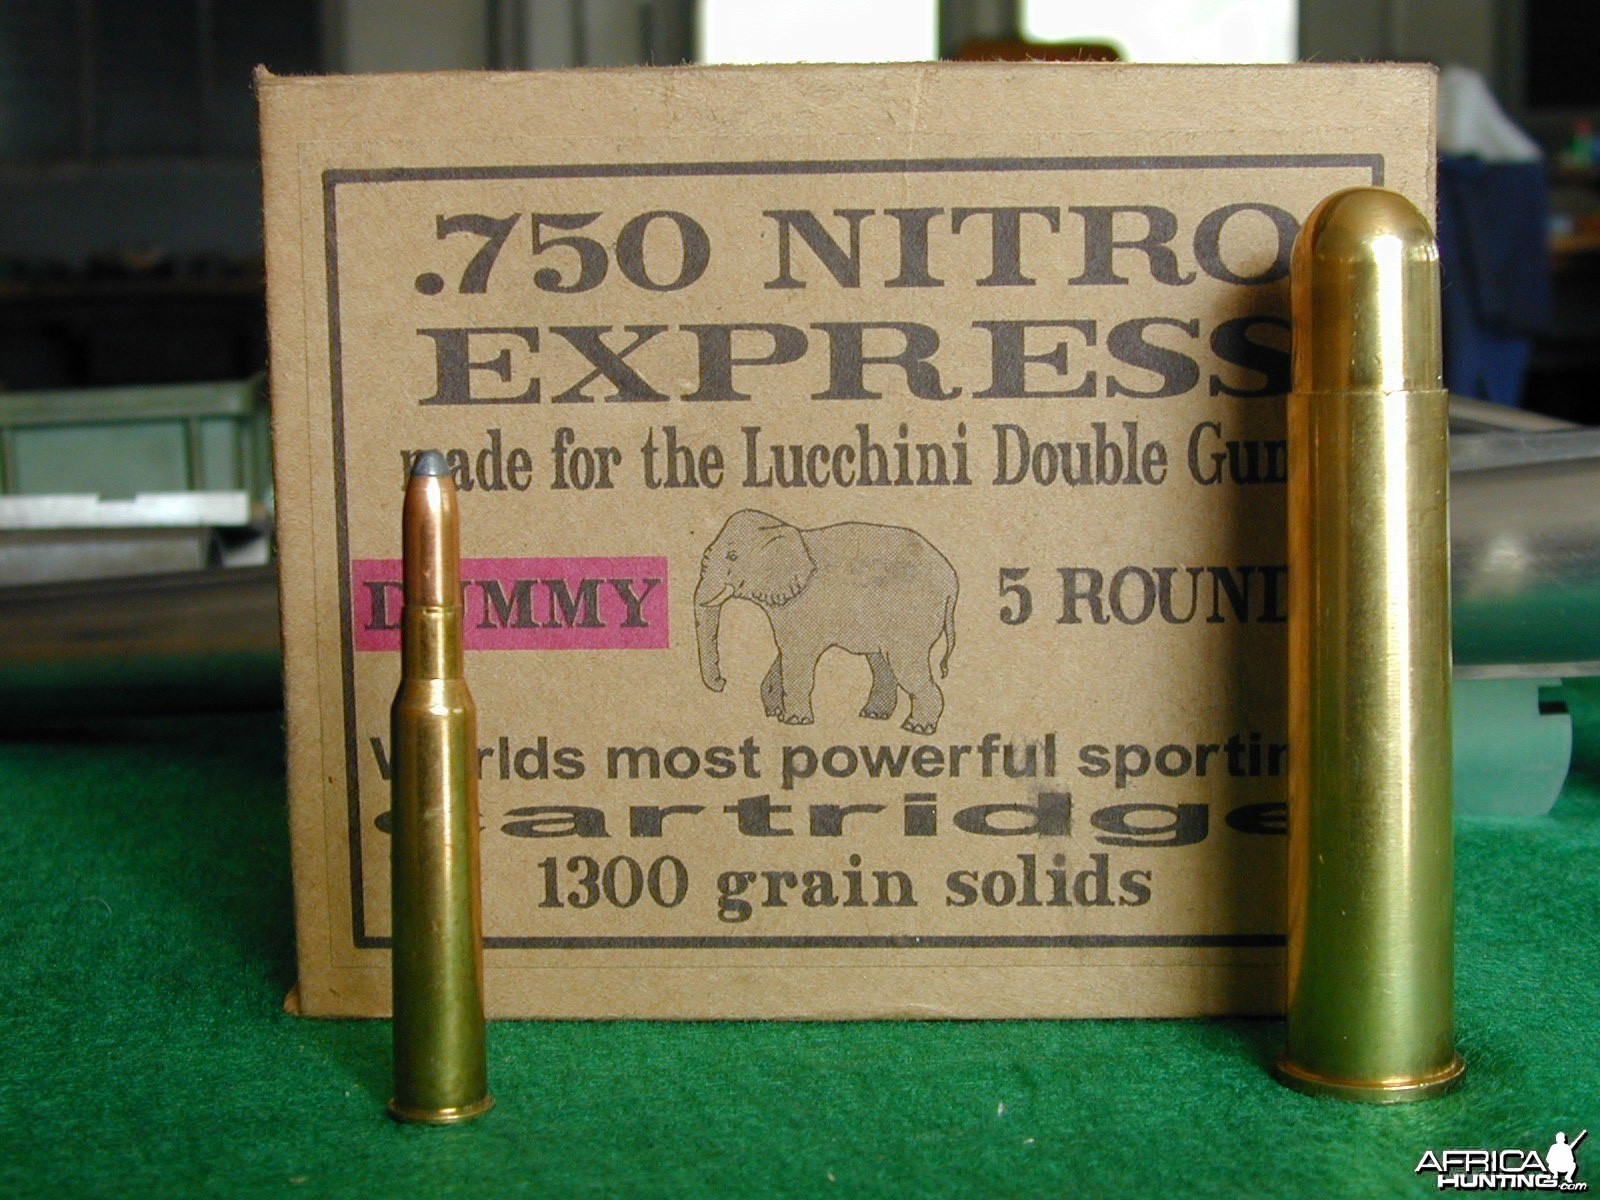 Double Rifle 750 Nitro Express made by Armitalia di Lucchini Sandro & C